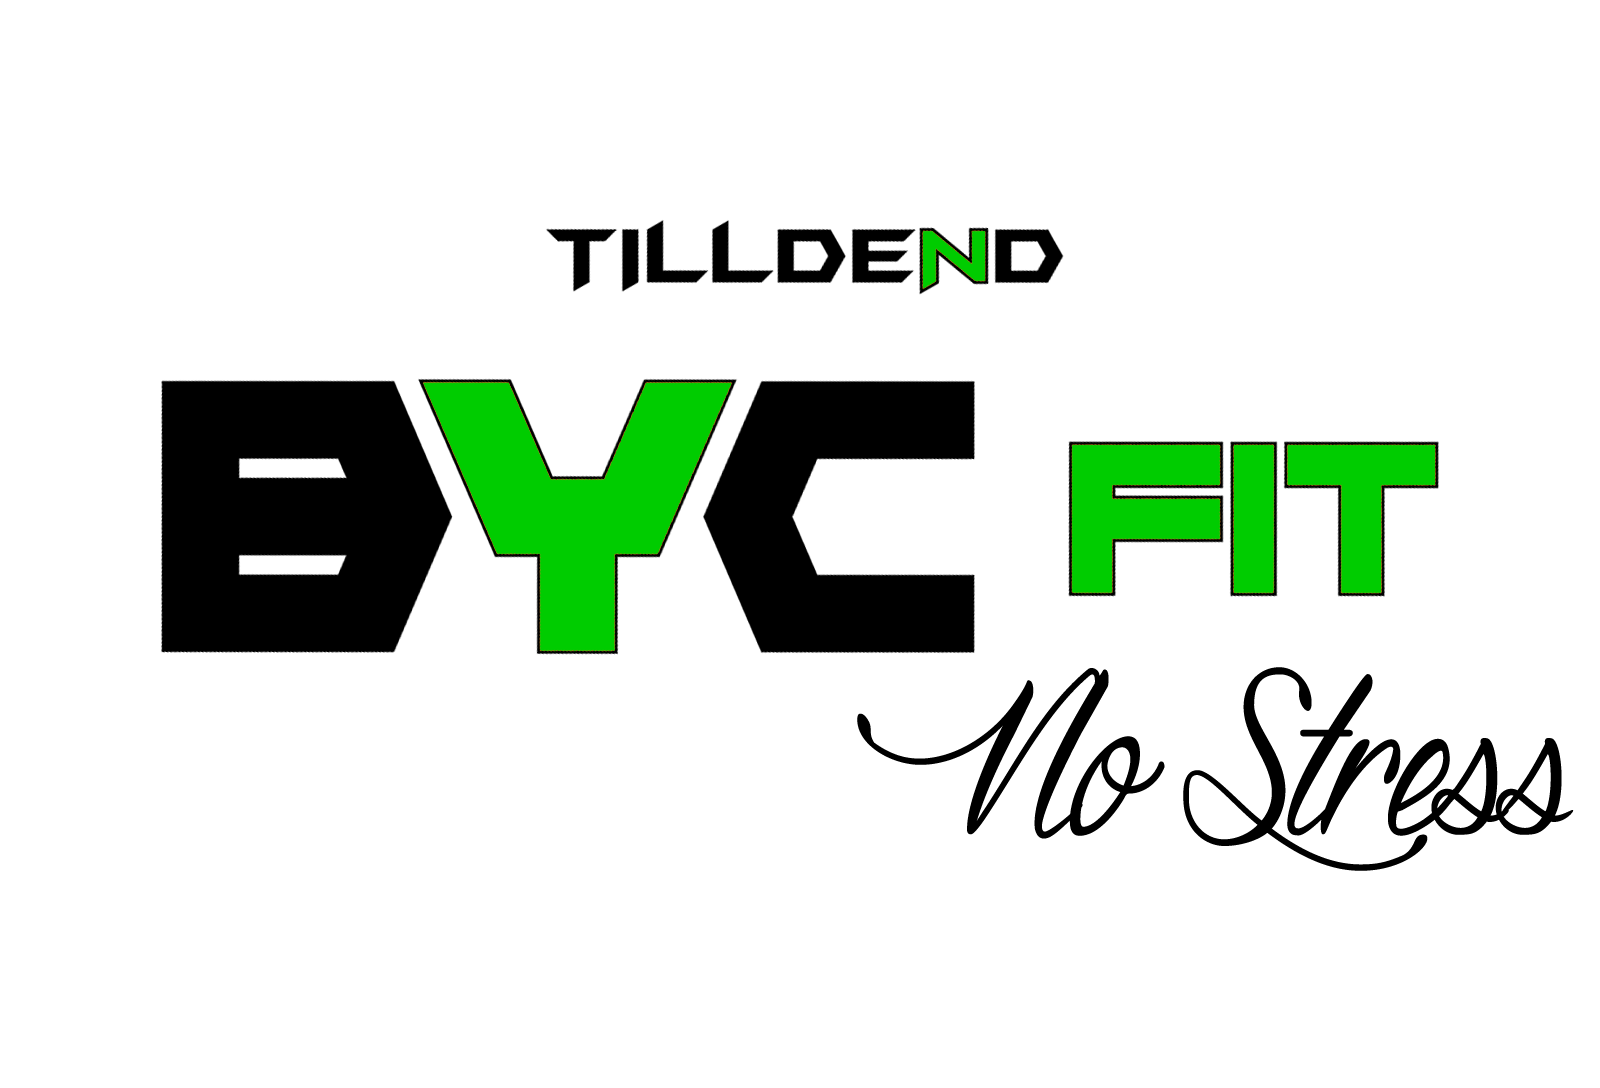 Tilldend BYC FIT No Stress